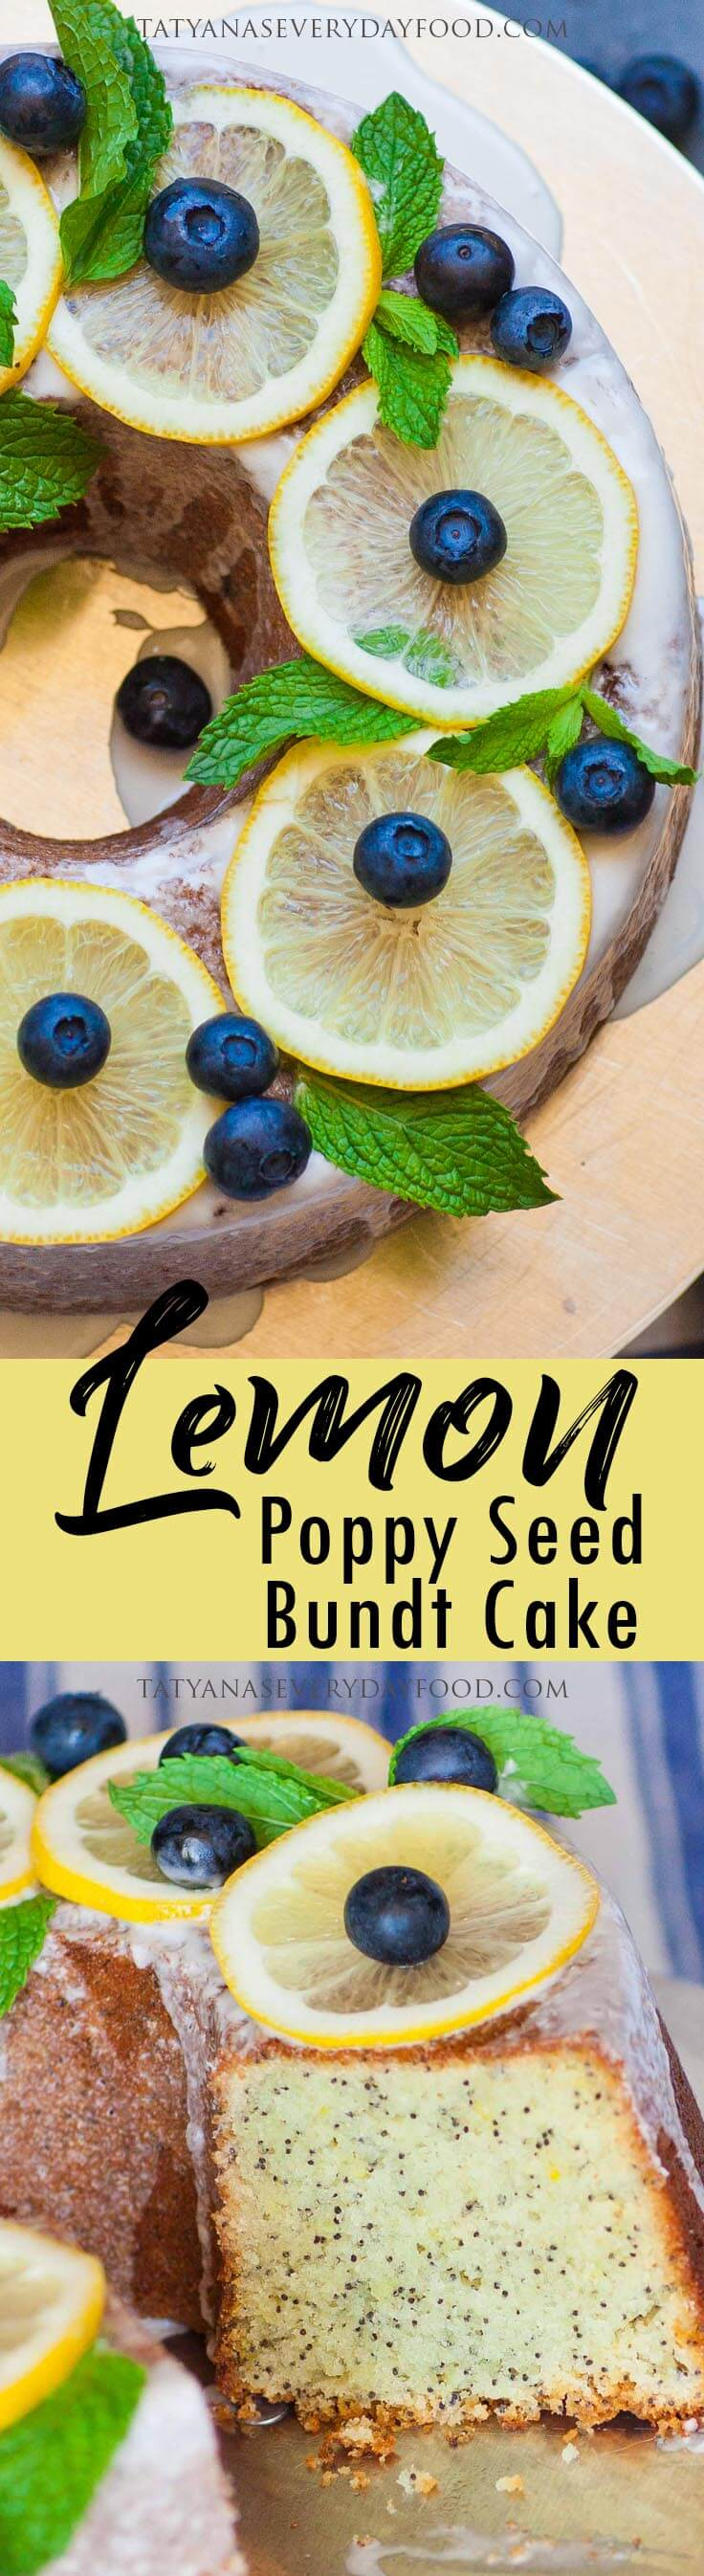 Lemon Poppy Seed Bundt Cake video recipe